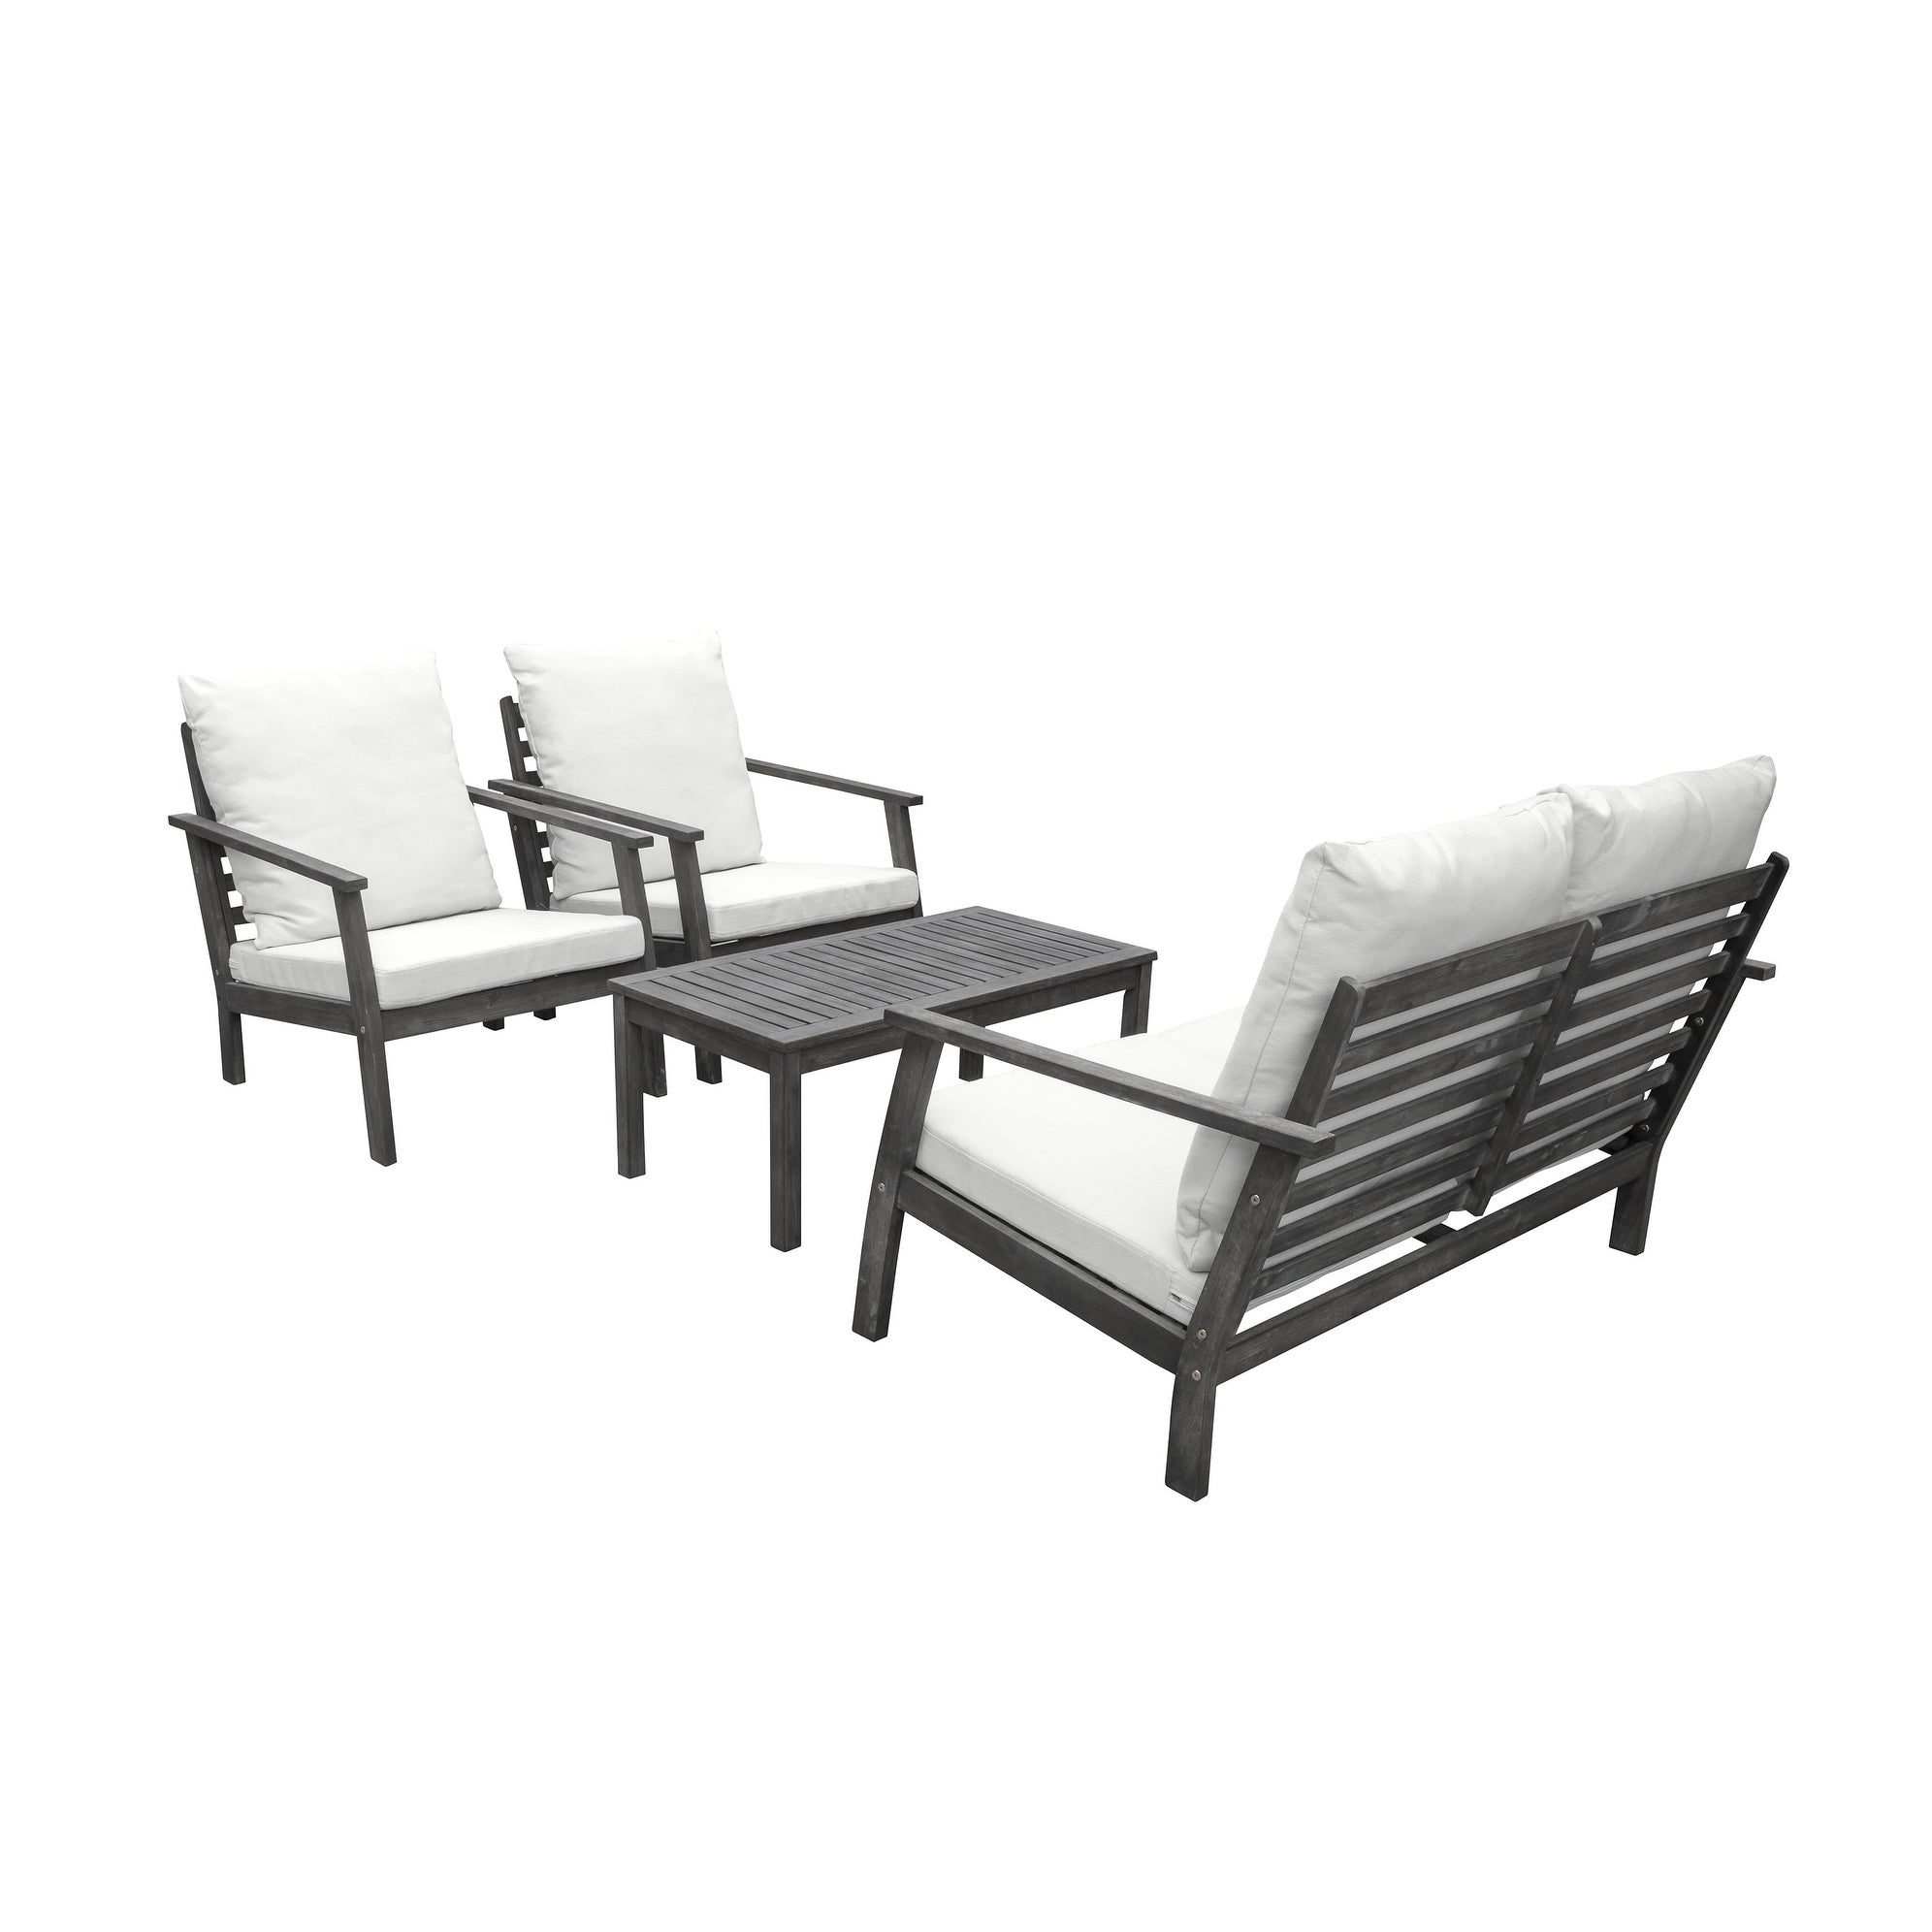 Details About Havenside Home Surfside Outdoor Patio Hand Scraped Wood Sofa Grey 4 Piece Sets Throughout Famous Havenside Home Surfside Outdoor Lounge Chairs (Gallery 18 of 25)